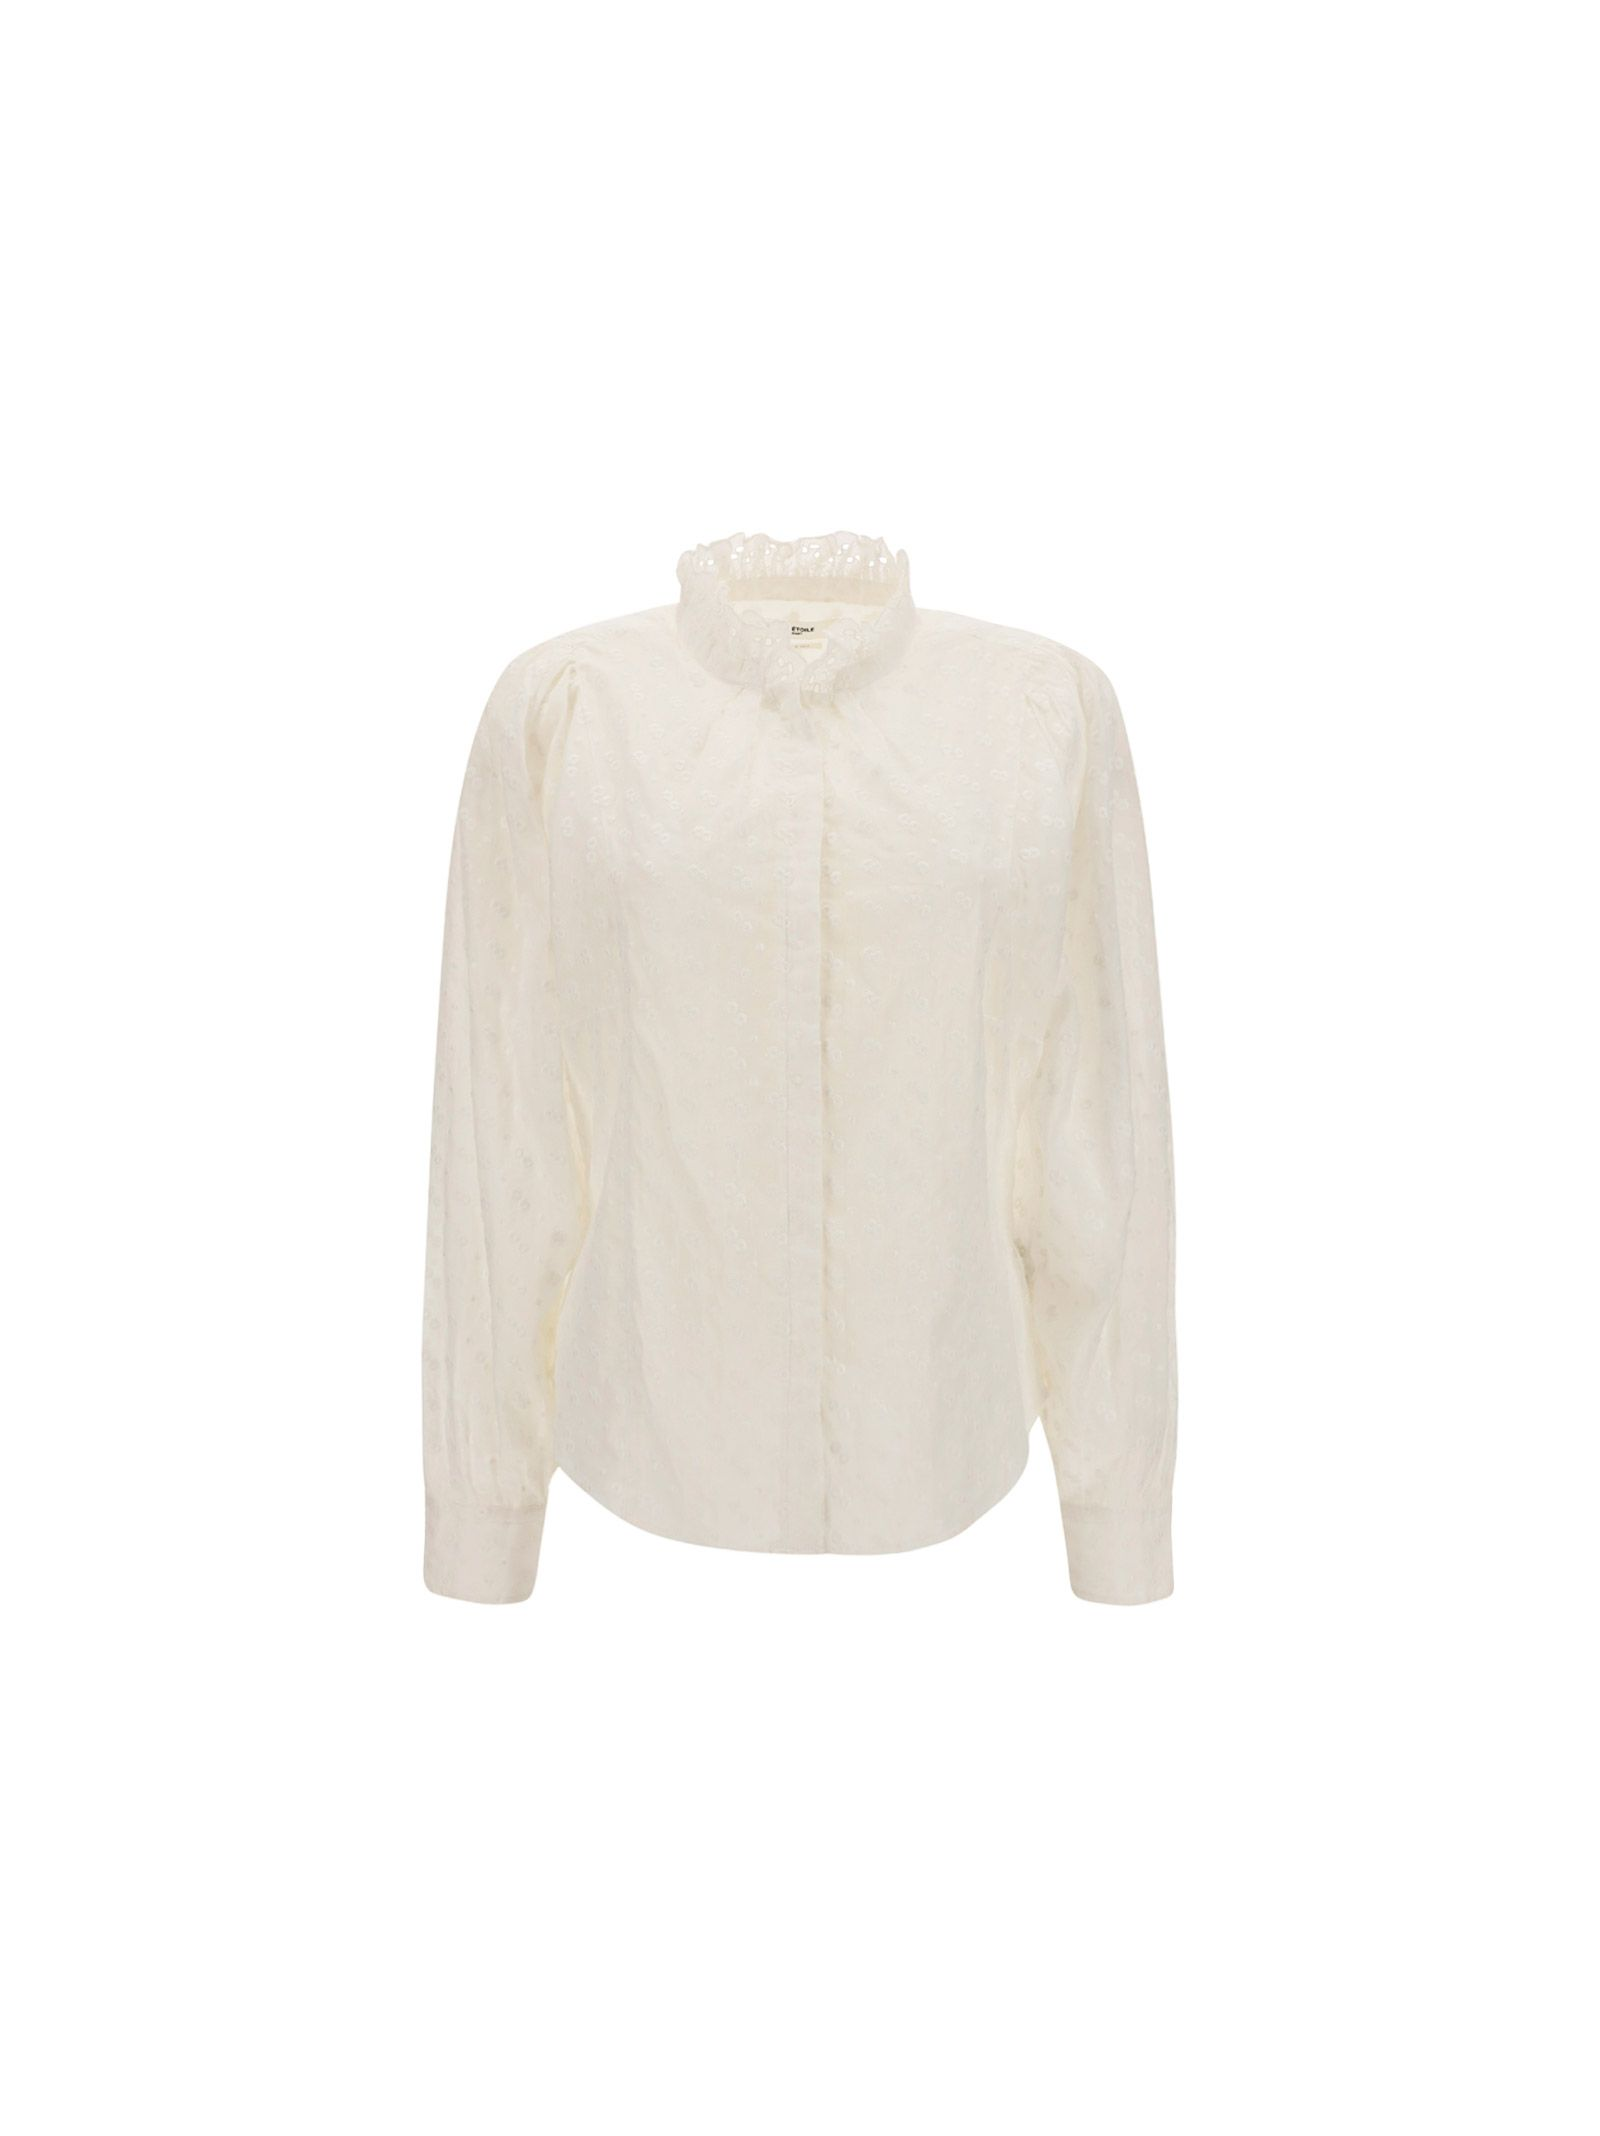 Isabel Marant ISABEL MARANT WOMEN'S HT203921P032E20WH WHITE OTHER MATERIALS SHIRT